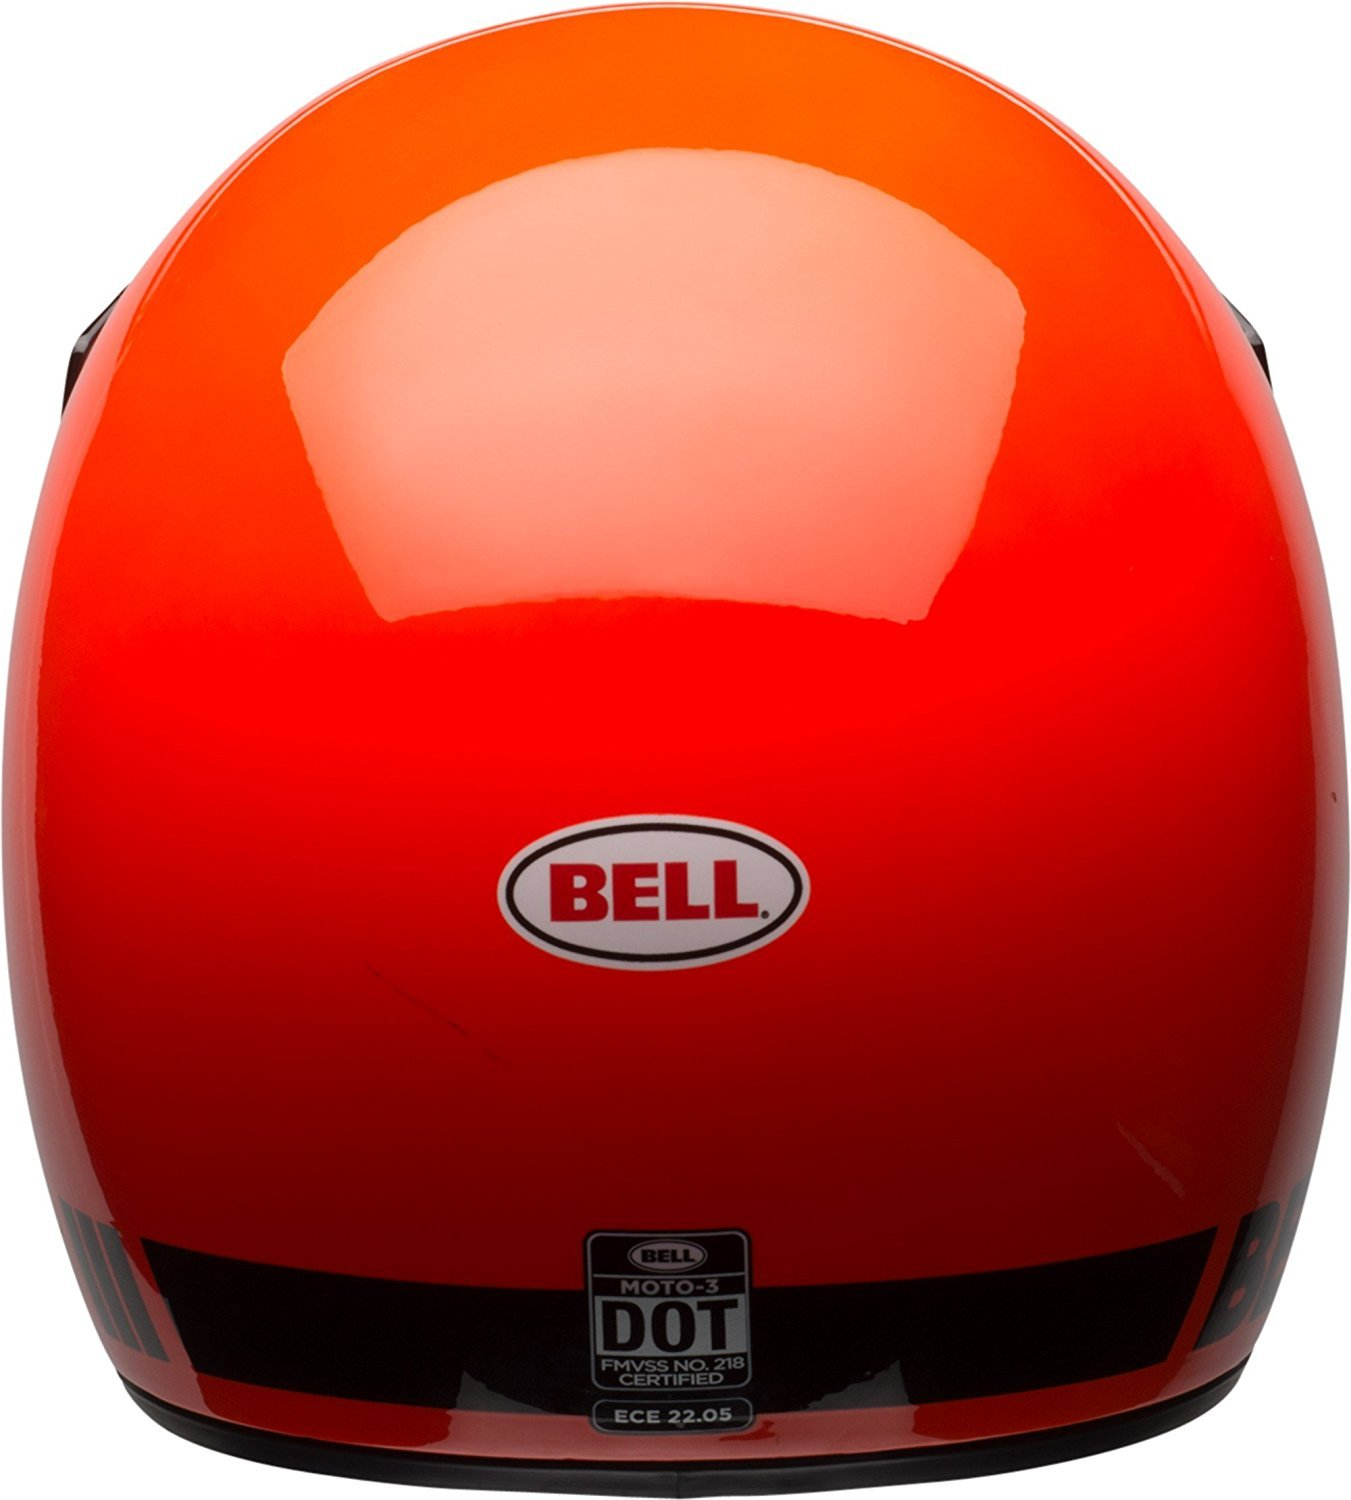 Amazon.com: Bell Moto-3 Off-Road Motorcycle Helmet (Classic Gloss Hi-Viz Orange, Small): Automotive